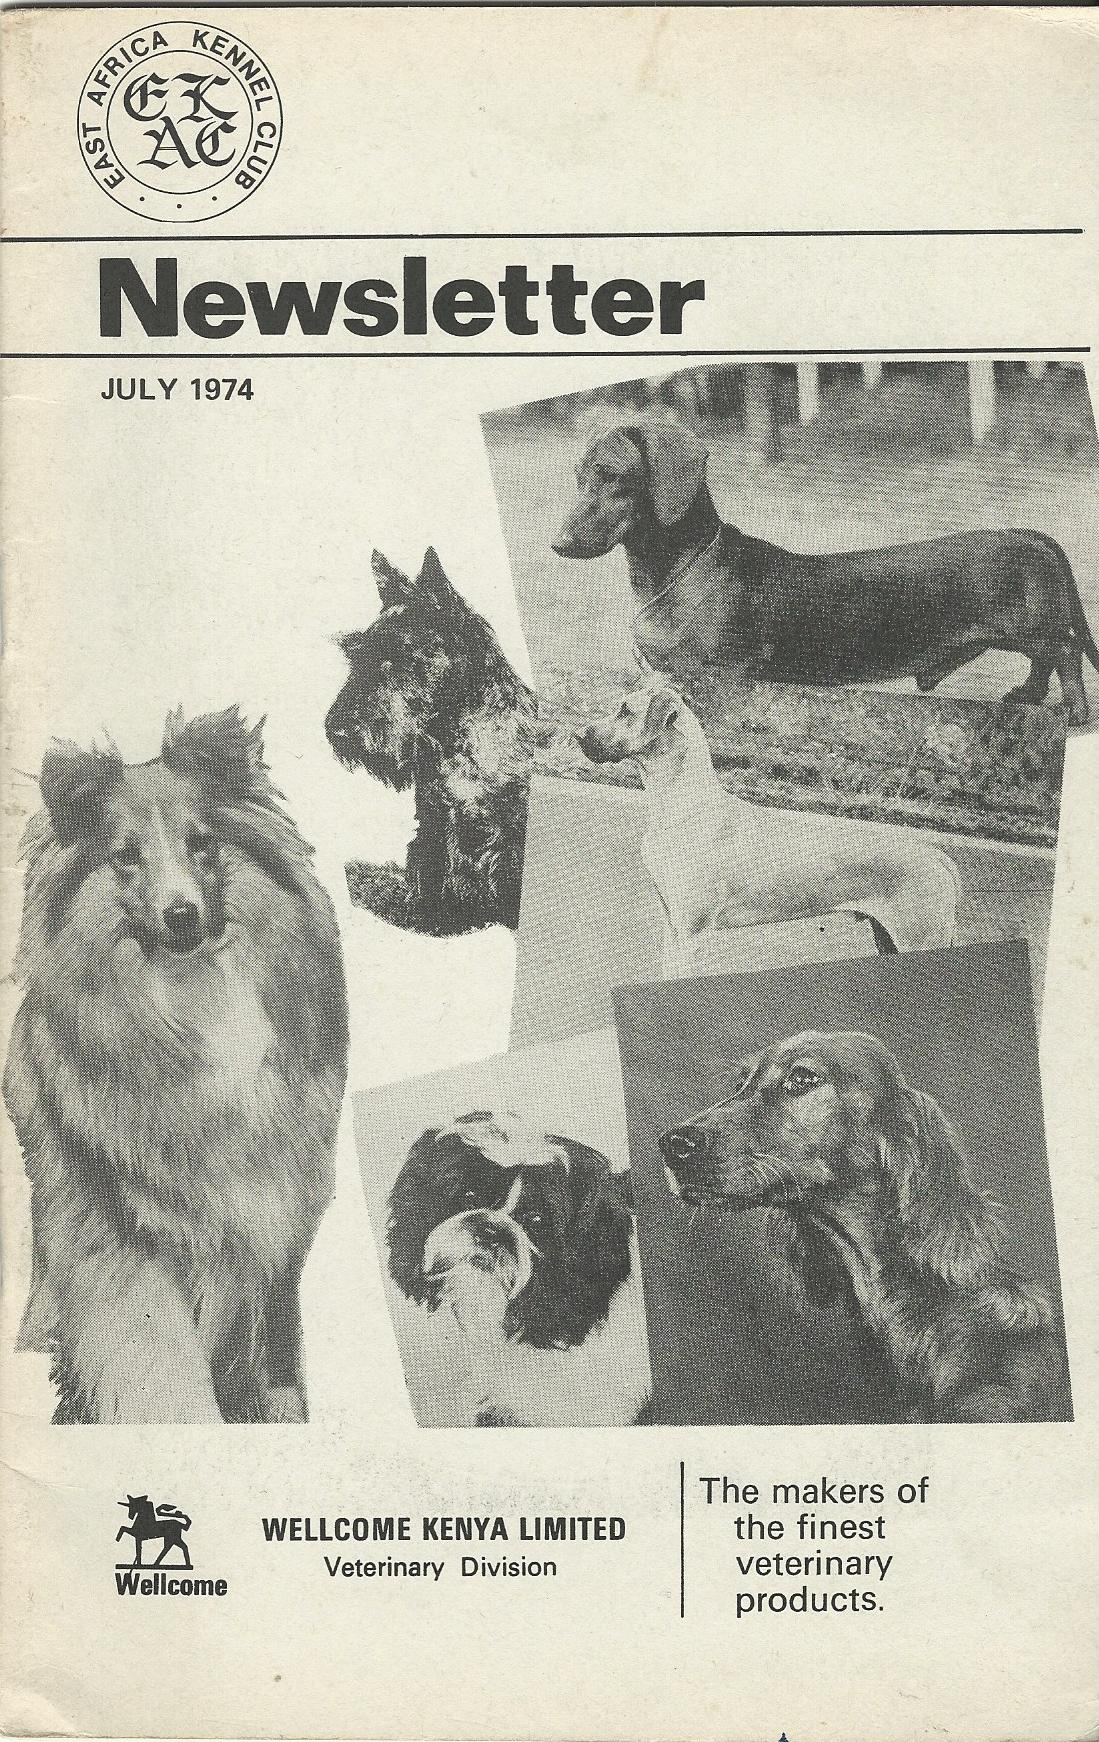 Image for East Africa Kennel Club Newsletter November 1971.